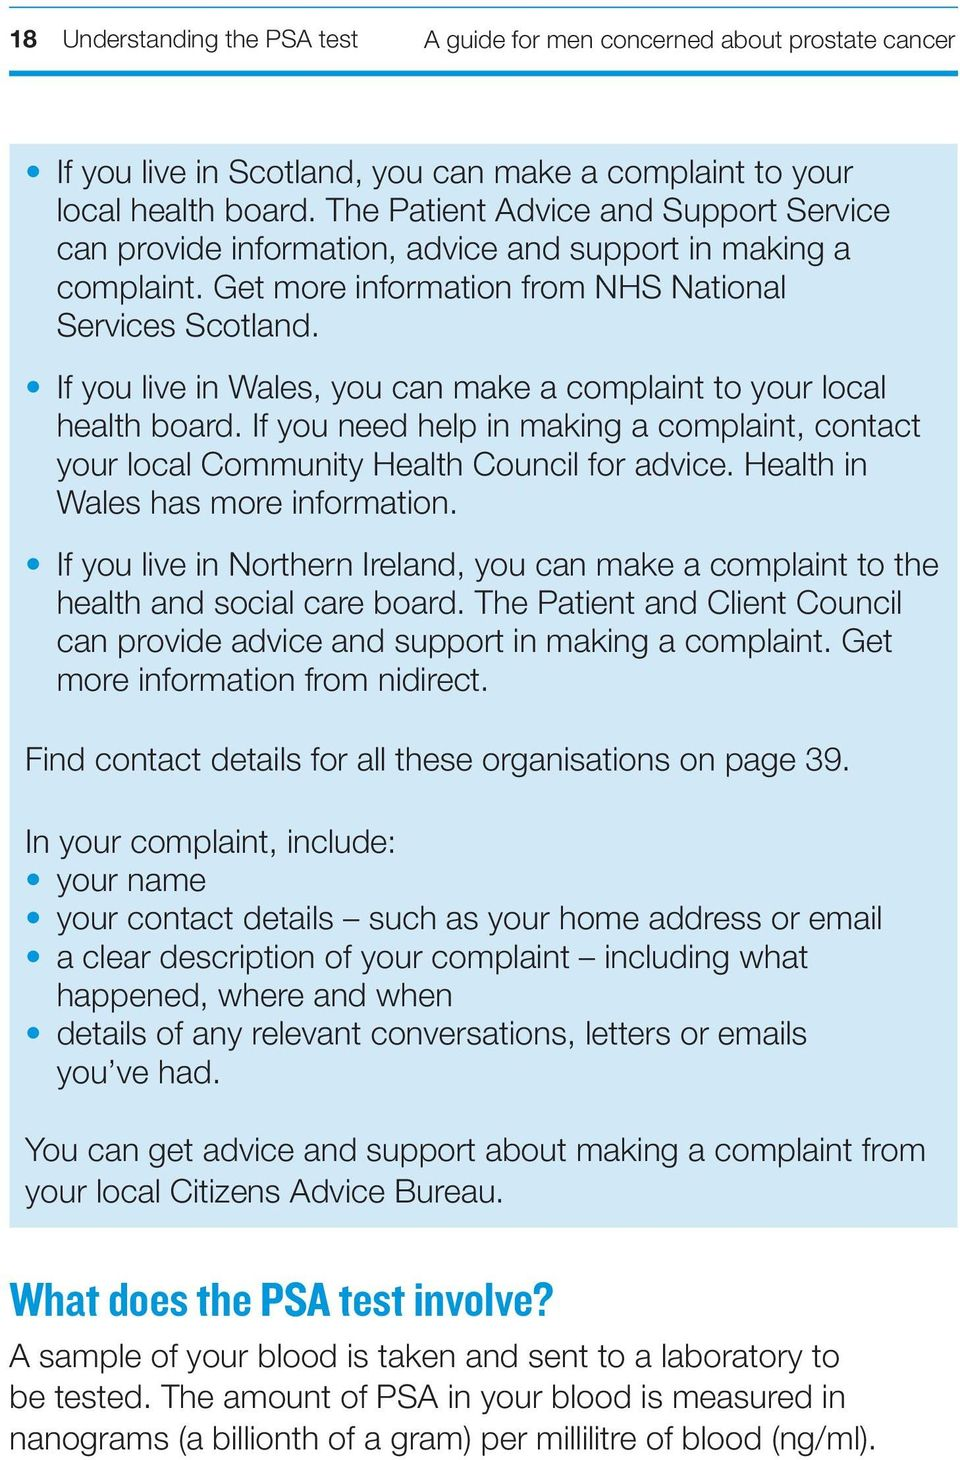 If you live in Wales, you can make a complaint to your local health board. If you need help in making a complaint, contact your local Community Health Council for advice.